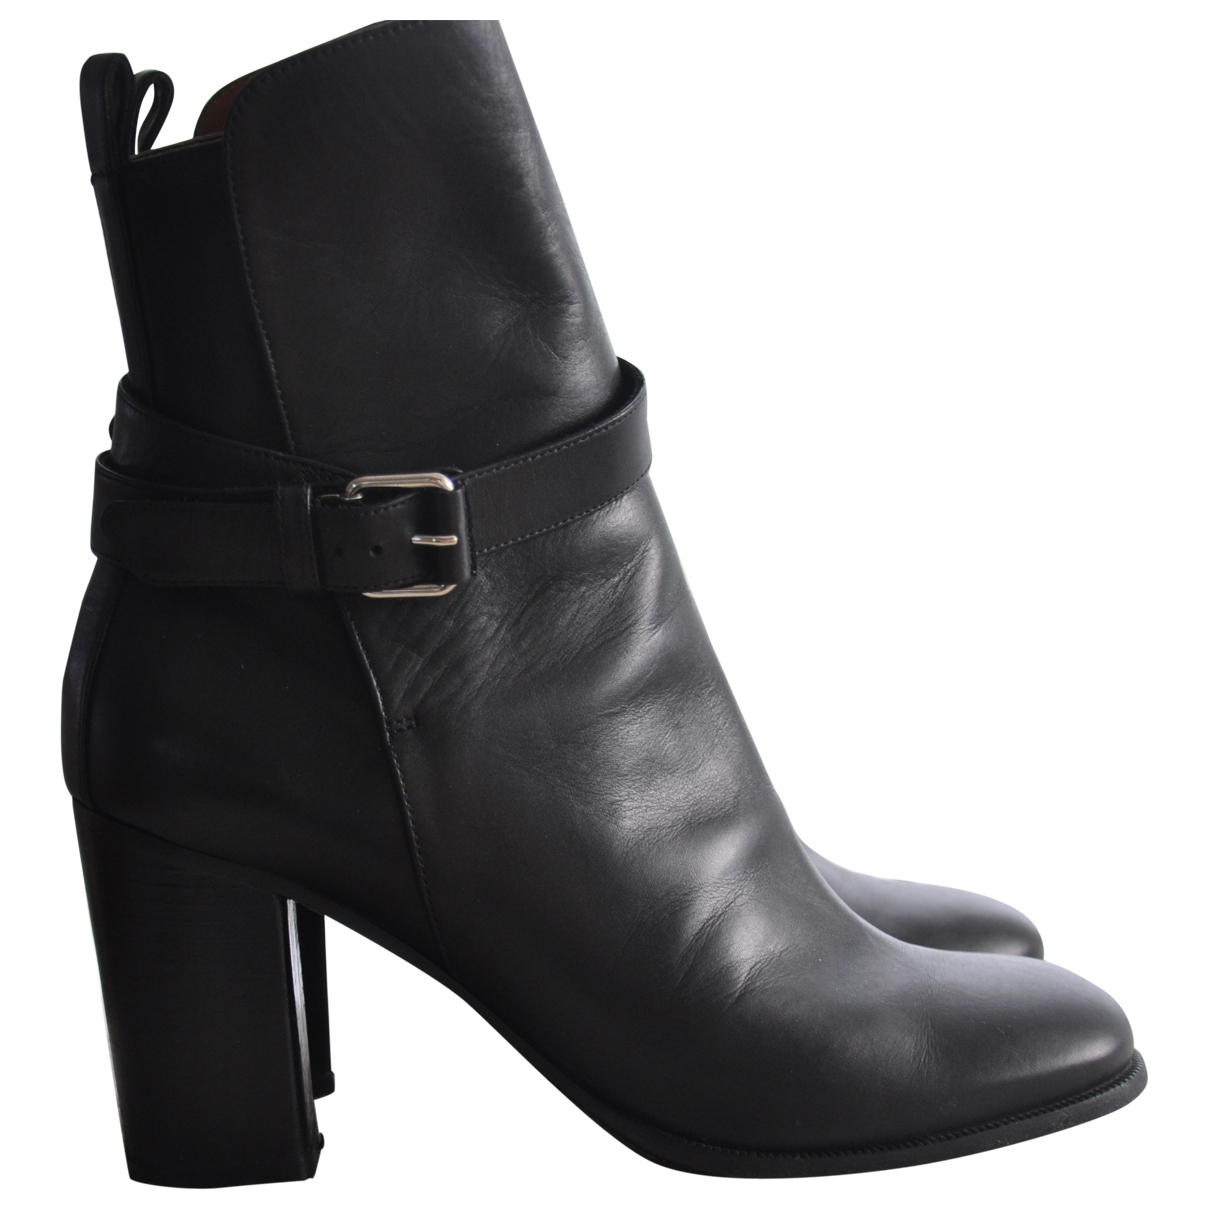 Celine \N Black Leather Ankle boots for Women 38.5 EU